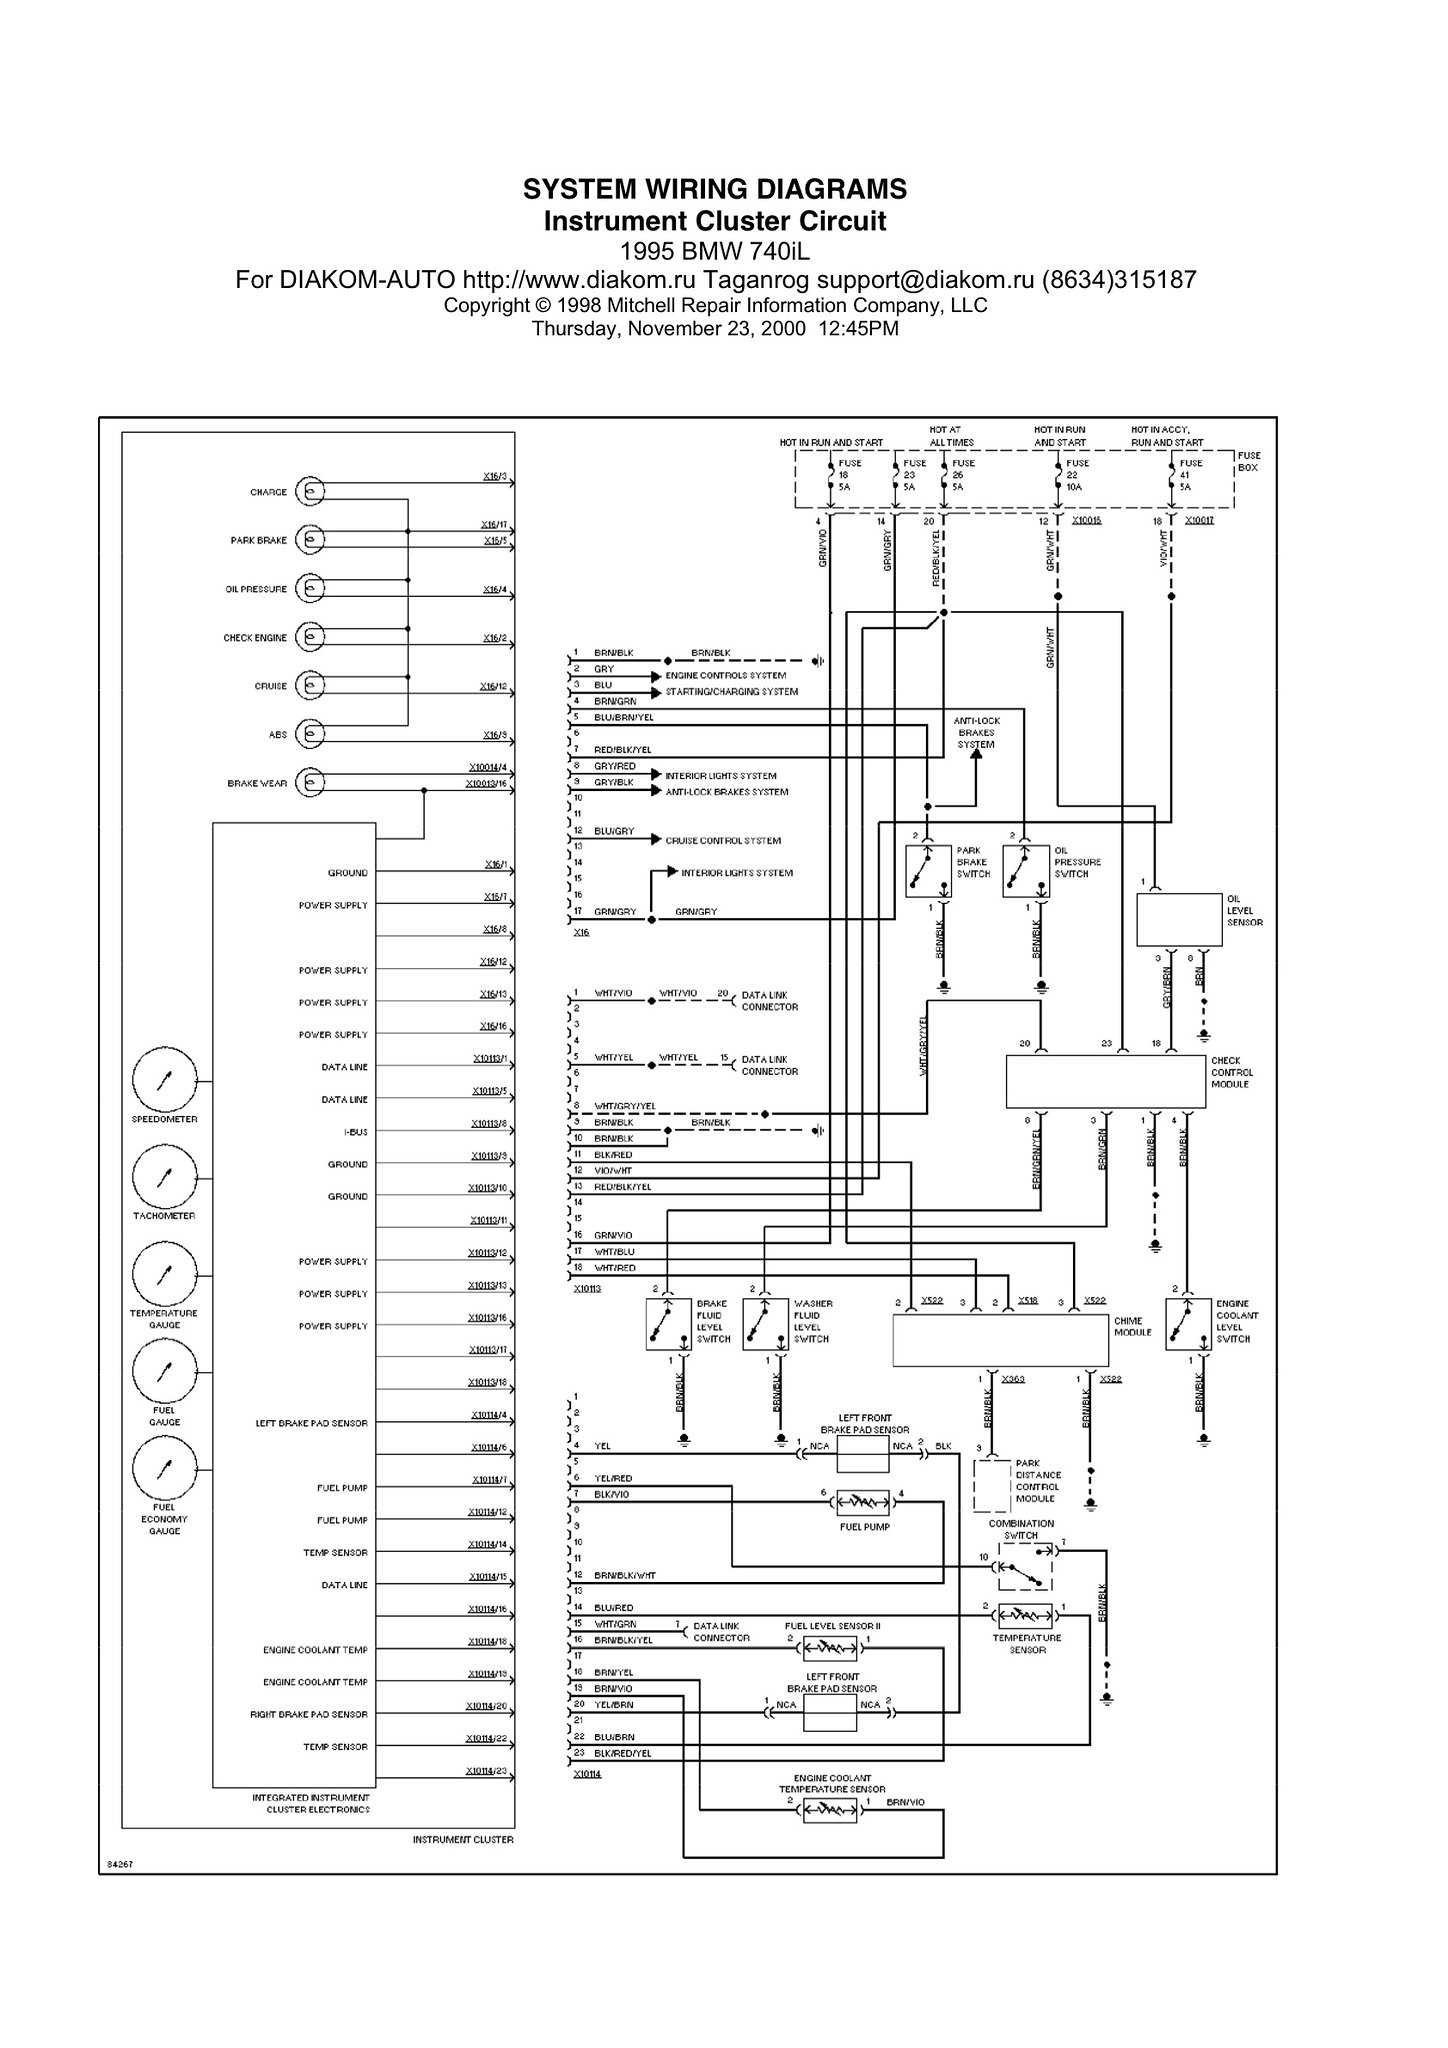 1994 Bmw 740il Engine Diagram Wiring Library Moreover Spa Gfi Electrical E46 Lcm Auto Rh Mit Edu Uk Hardtobelieve Me 1999